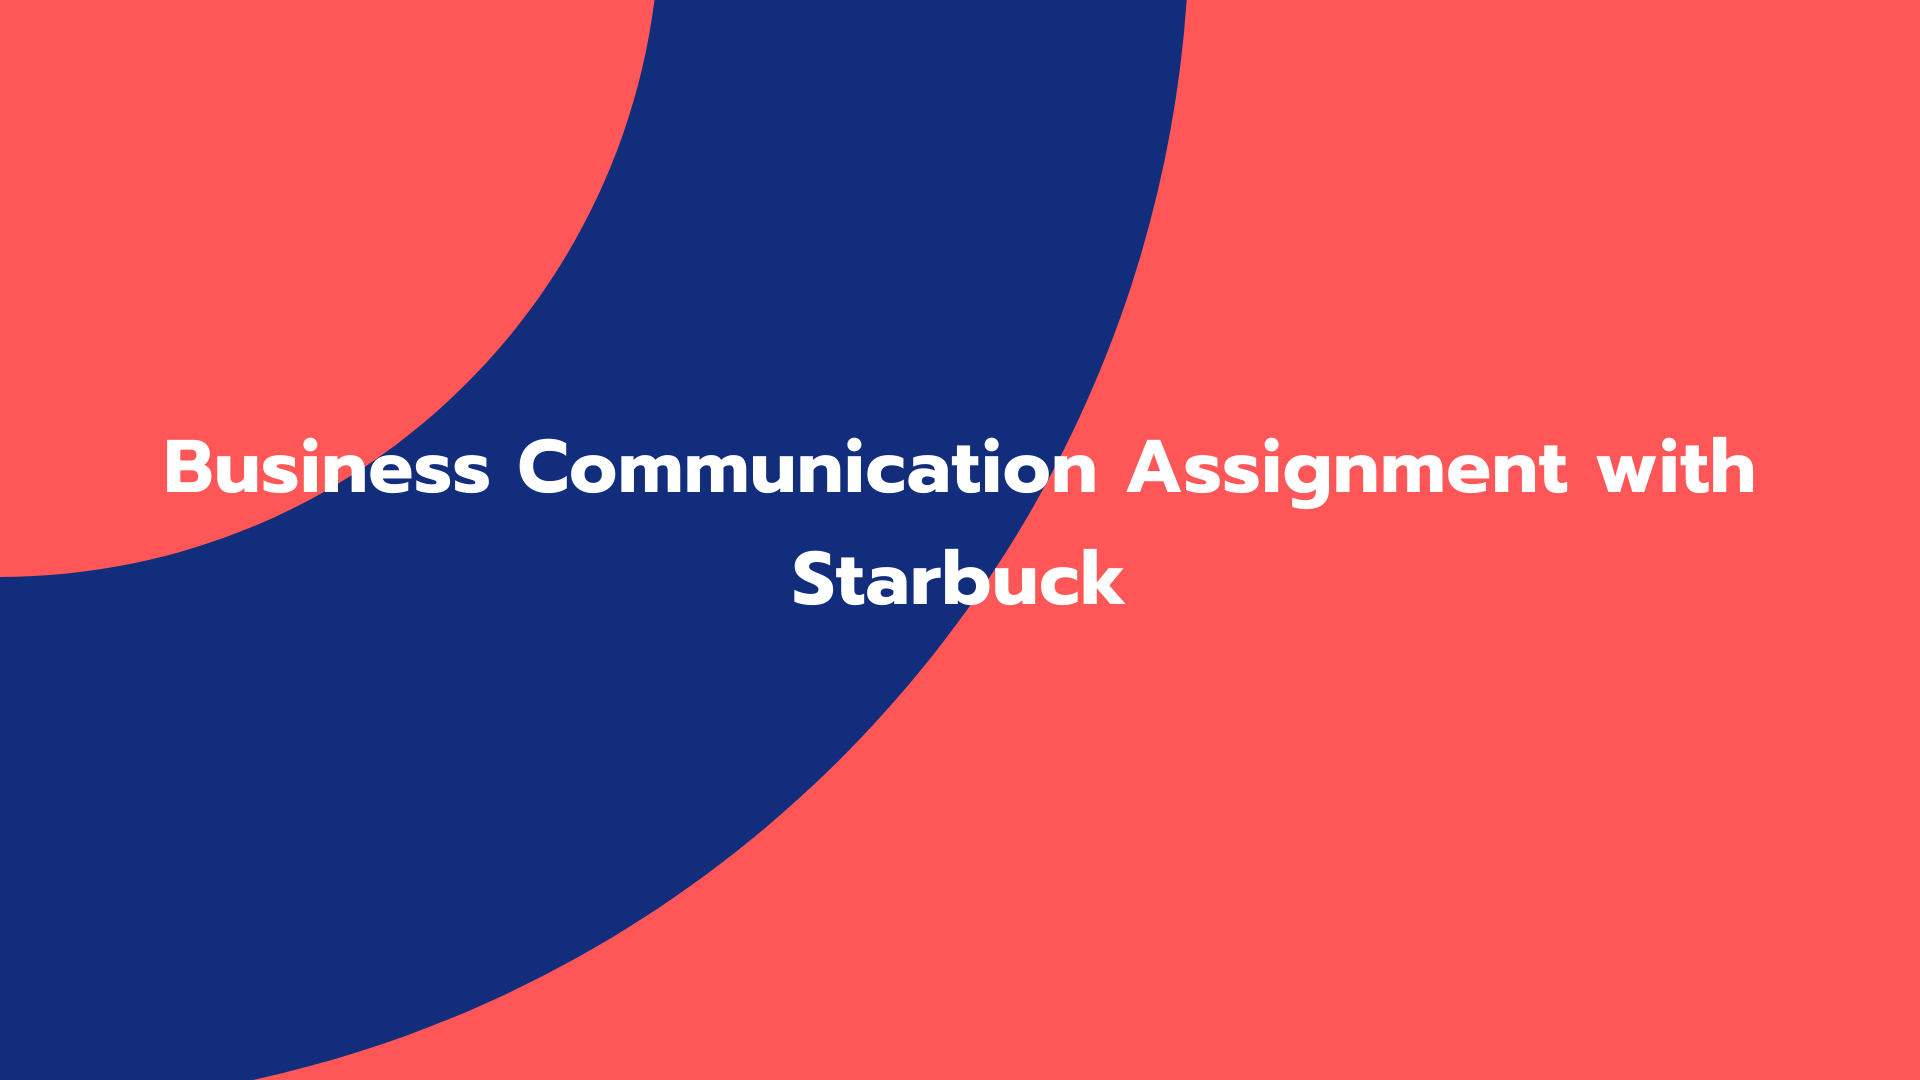 Business Communication Assignment with Starbuck